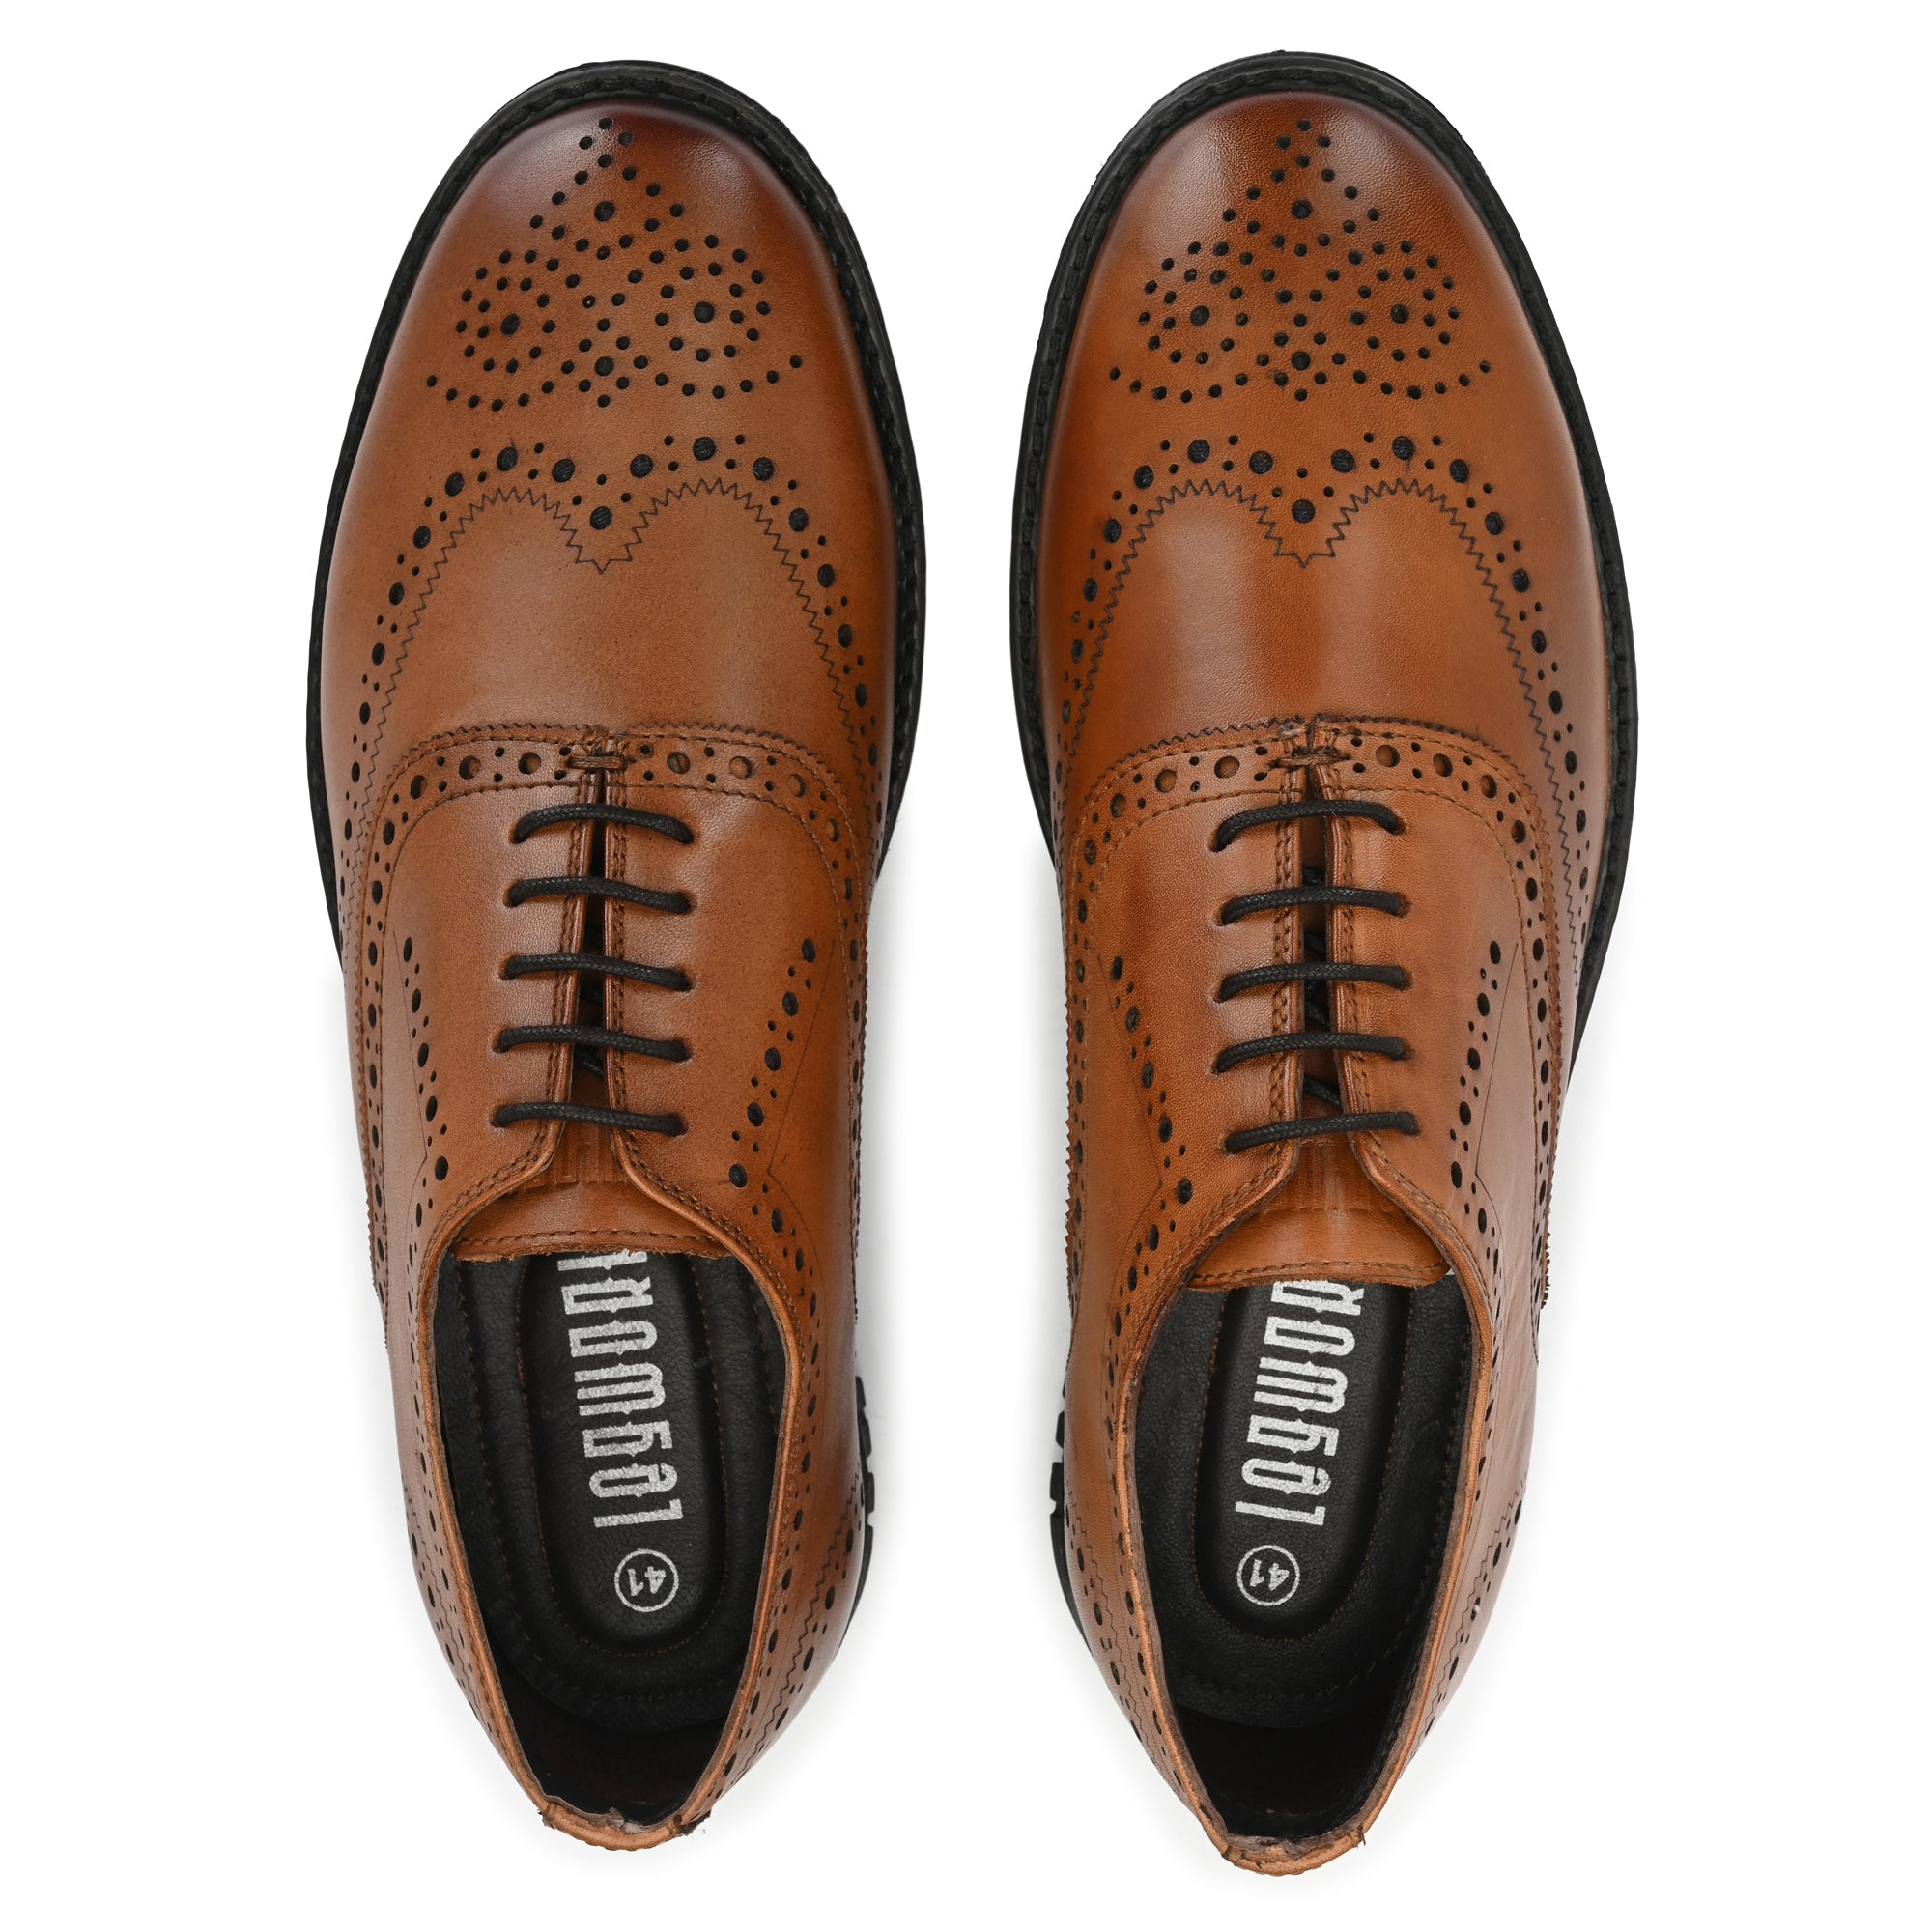 Legwork Informal Wingtip Oxford Brogue British Tan Full Grain Leather Shoe